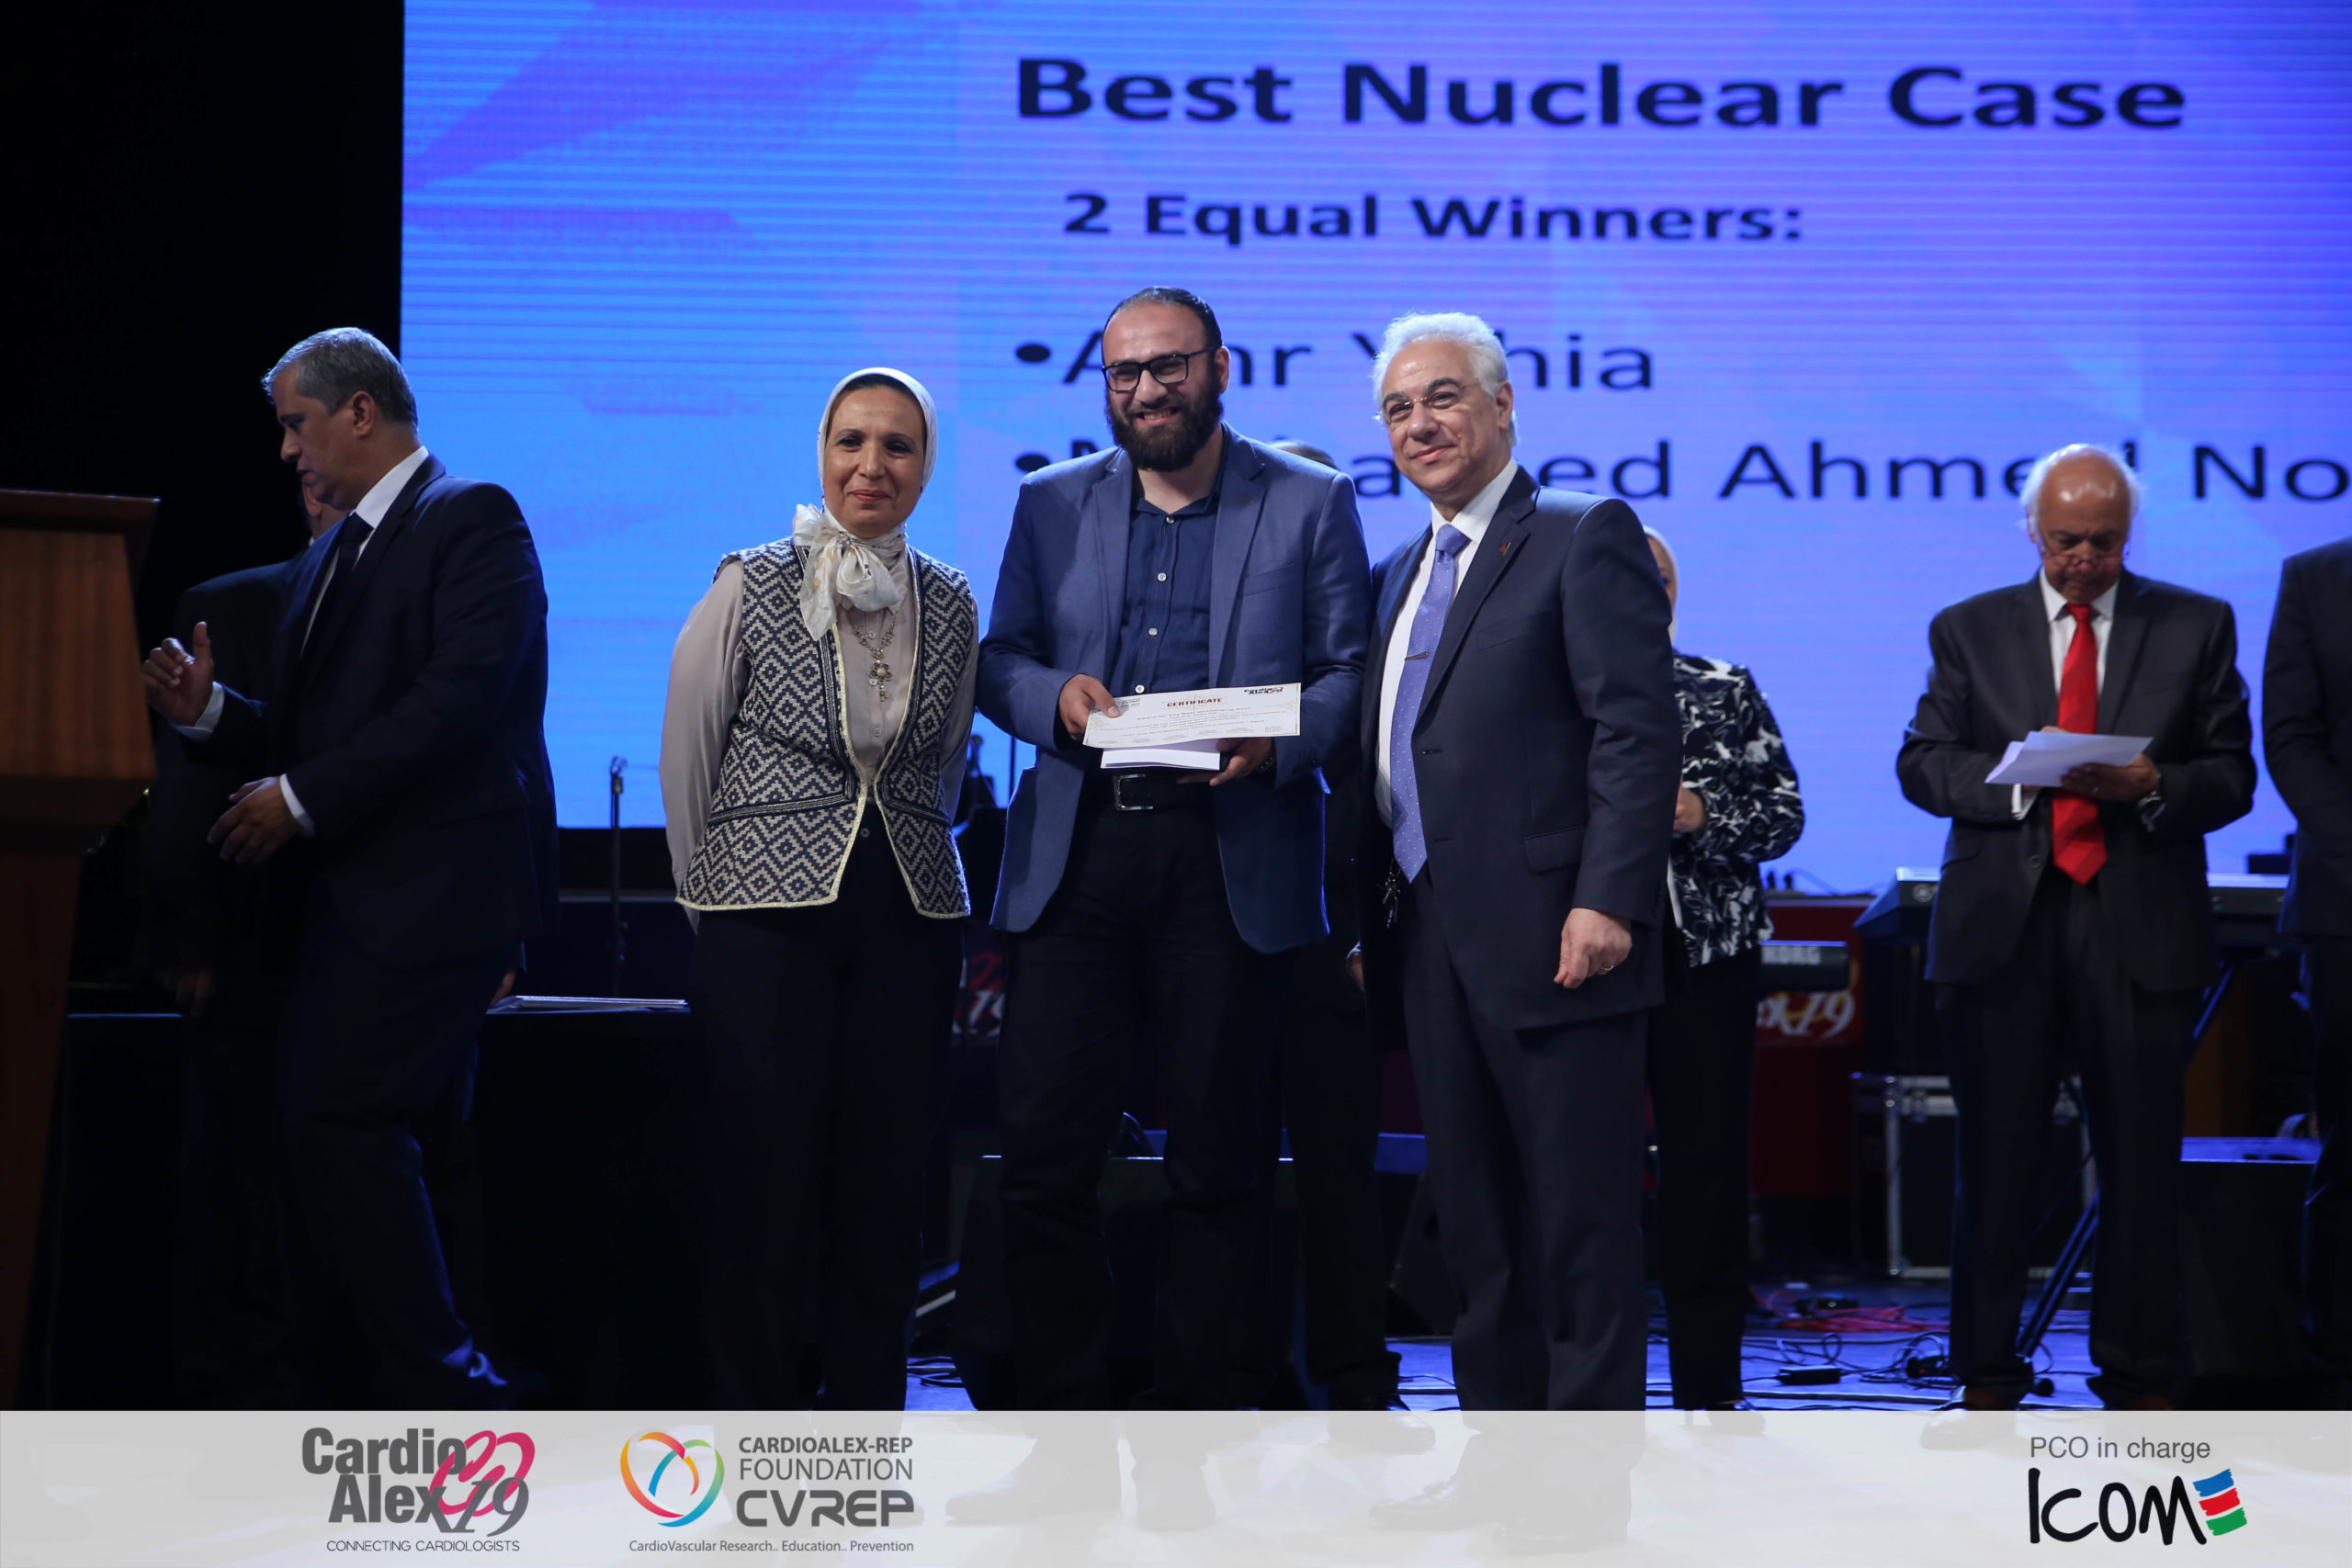 Best Nuclear Case